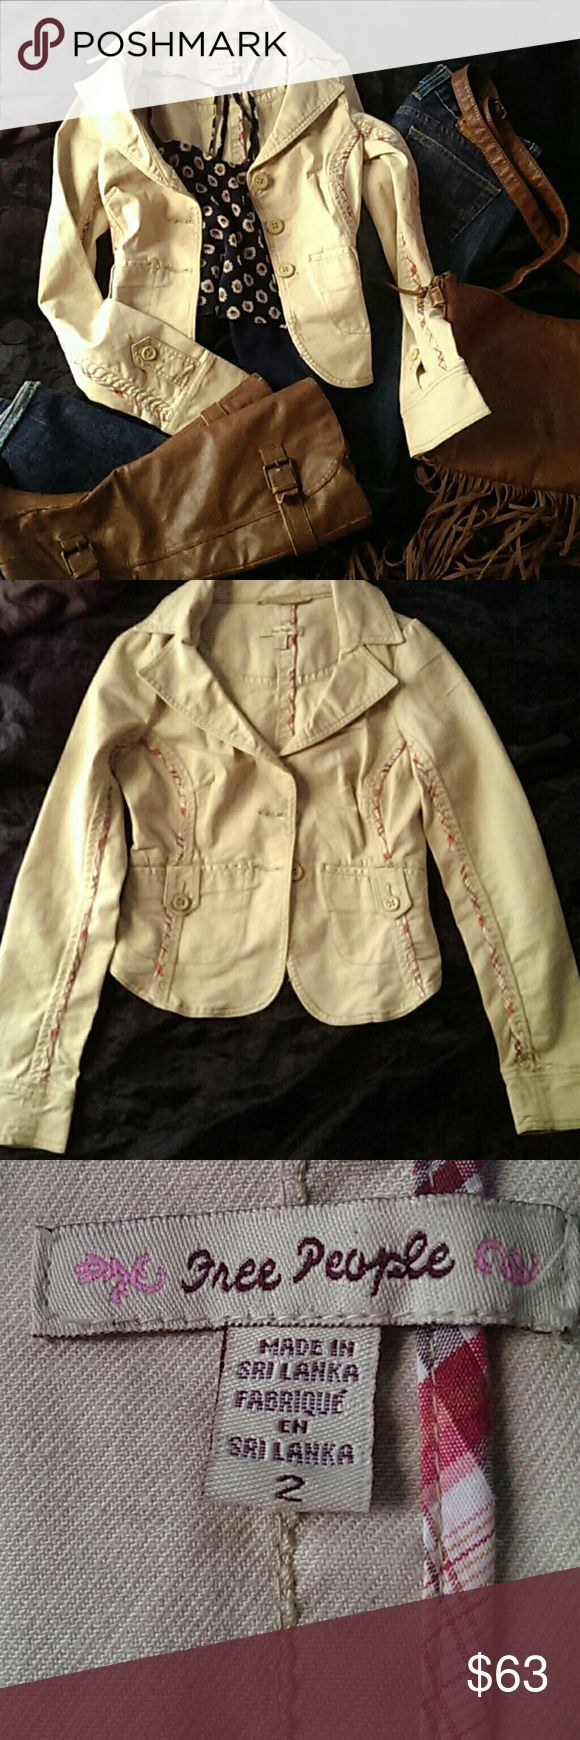 Free People SALE Jacket Free People Super Cute jacket.goes great with a pair of jeans and a pair of boots.Its in fantastic condition and its a size 2.No trades,Price firm,no offers,no returns,all sales final,I only sale to trusted buyers,happy poshing Free People Jackets & Coats